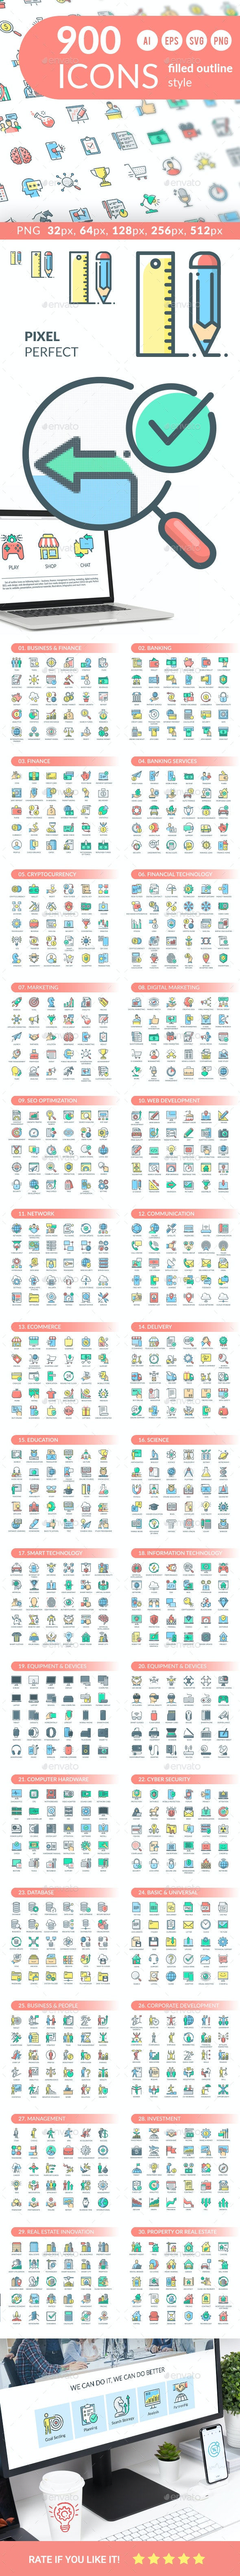 Icon Pack - Business Icons